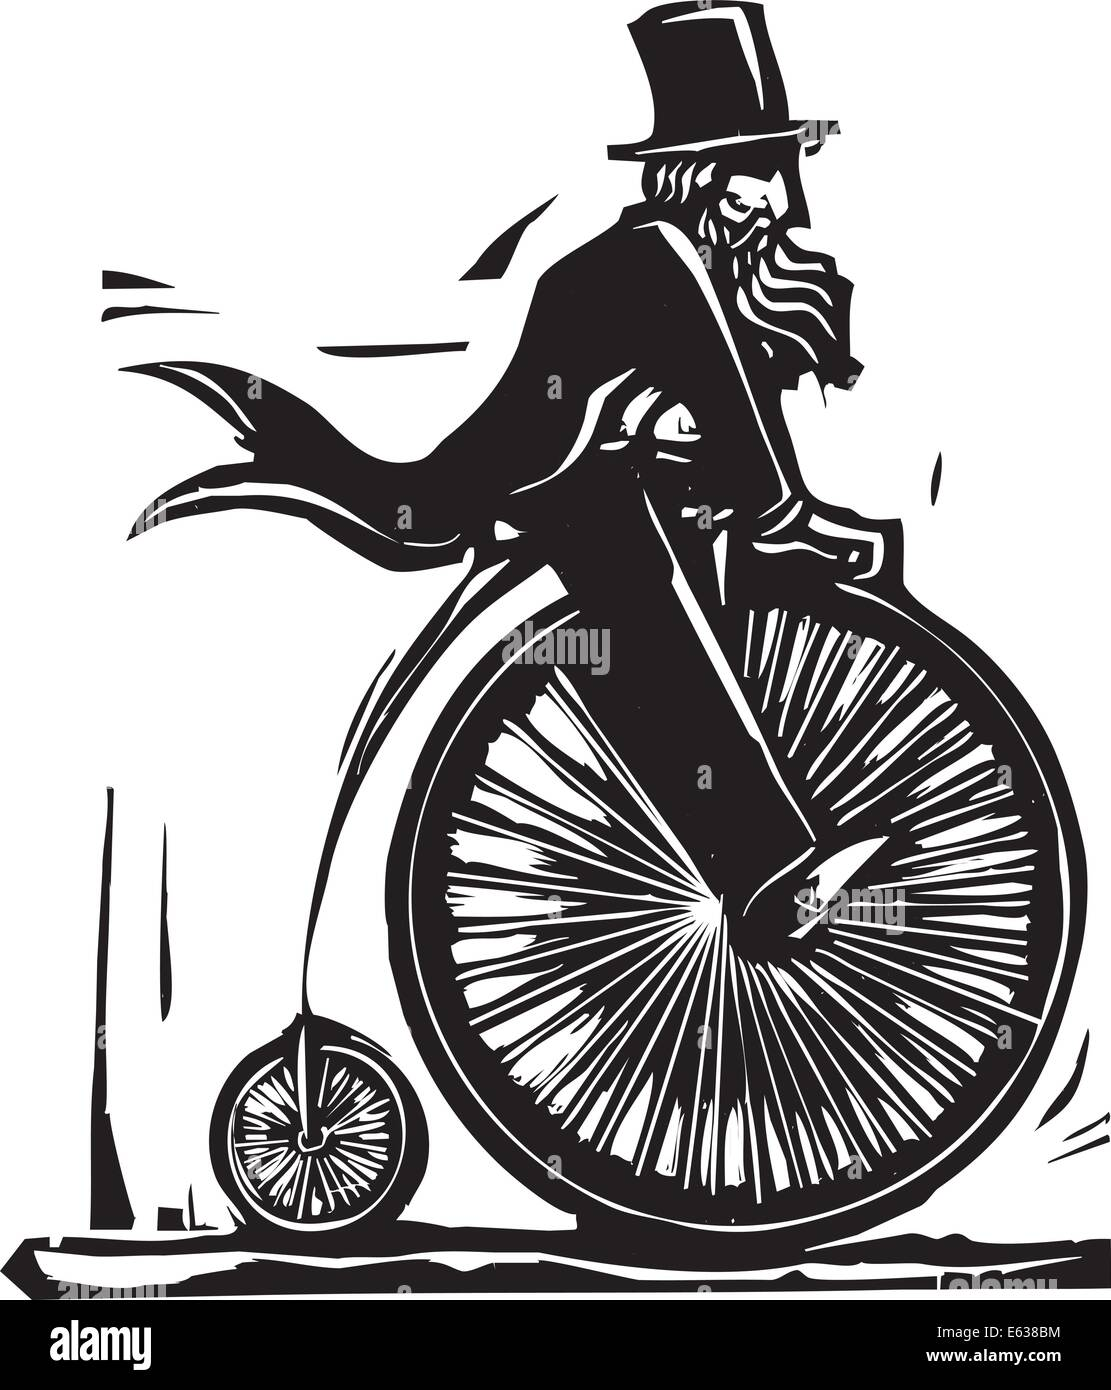 Man in top hat on a velocipede bicycle. - Stock Image